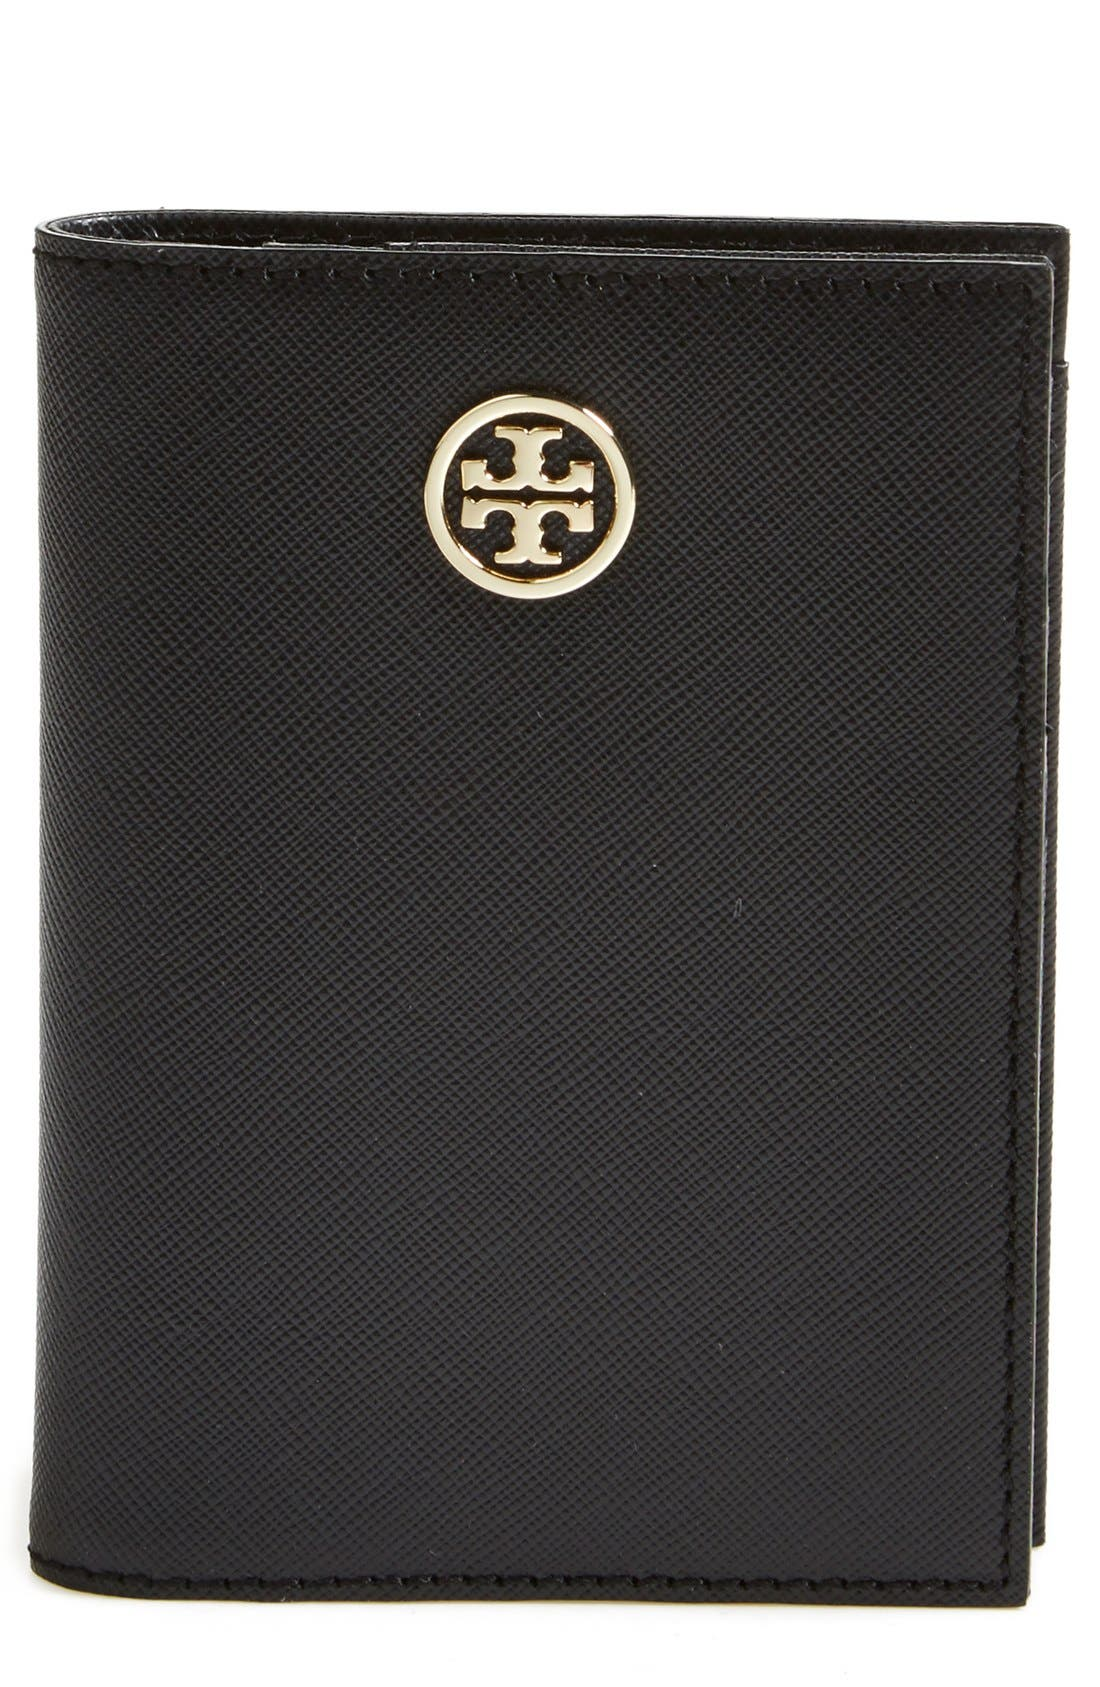 'Robinson' Passport Case,                             Main thumbnail 1, color,                             001